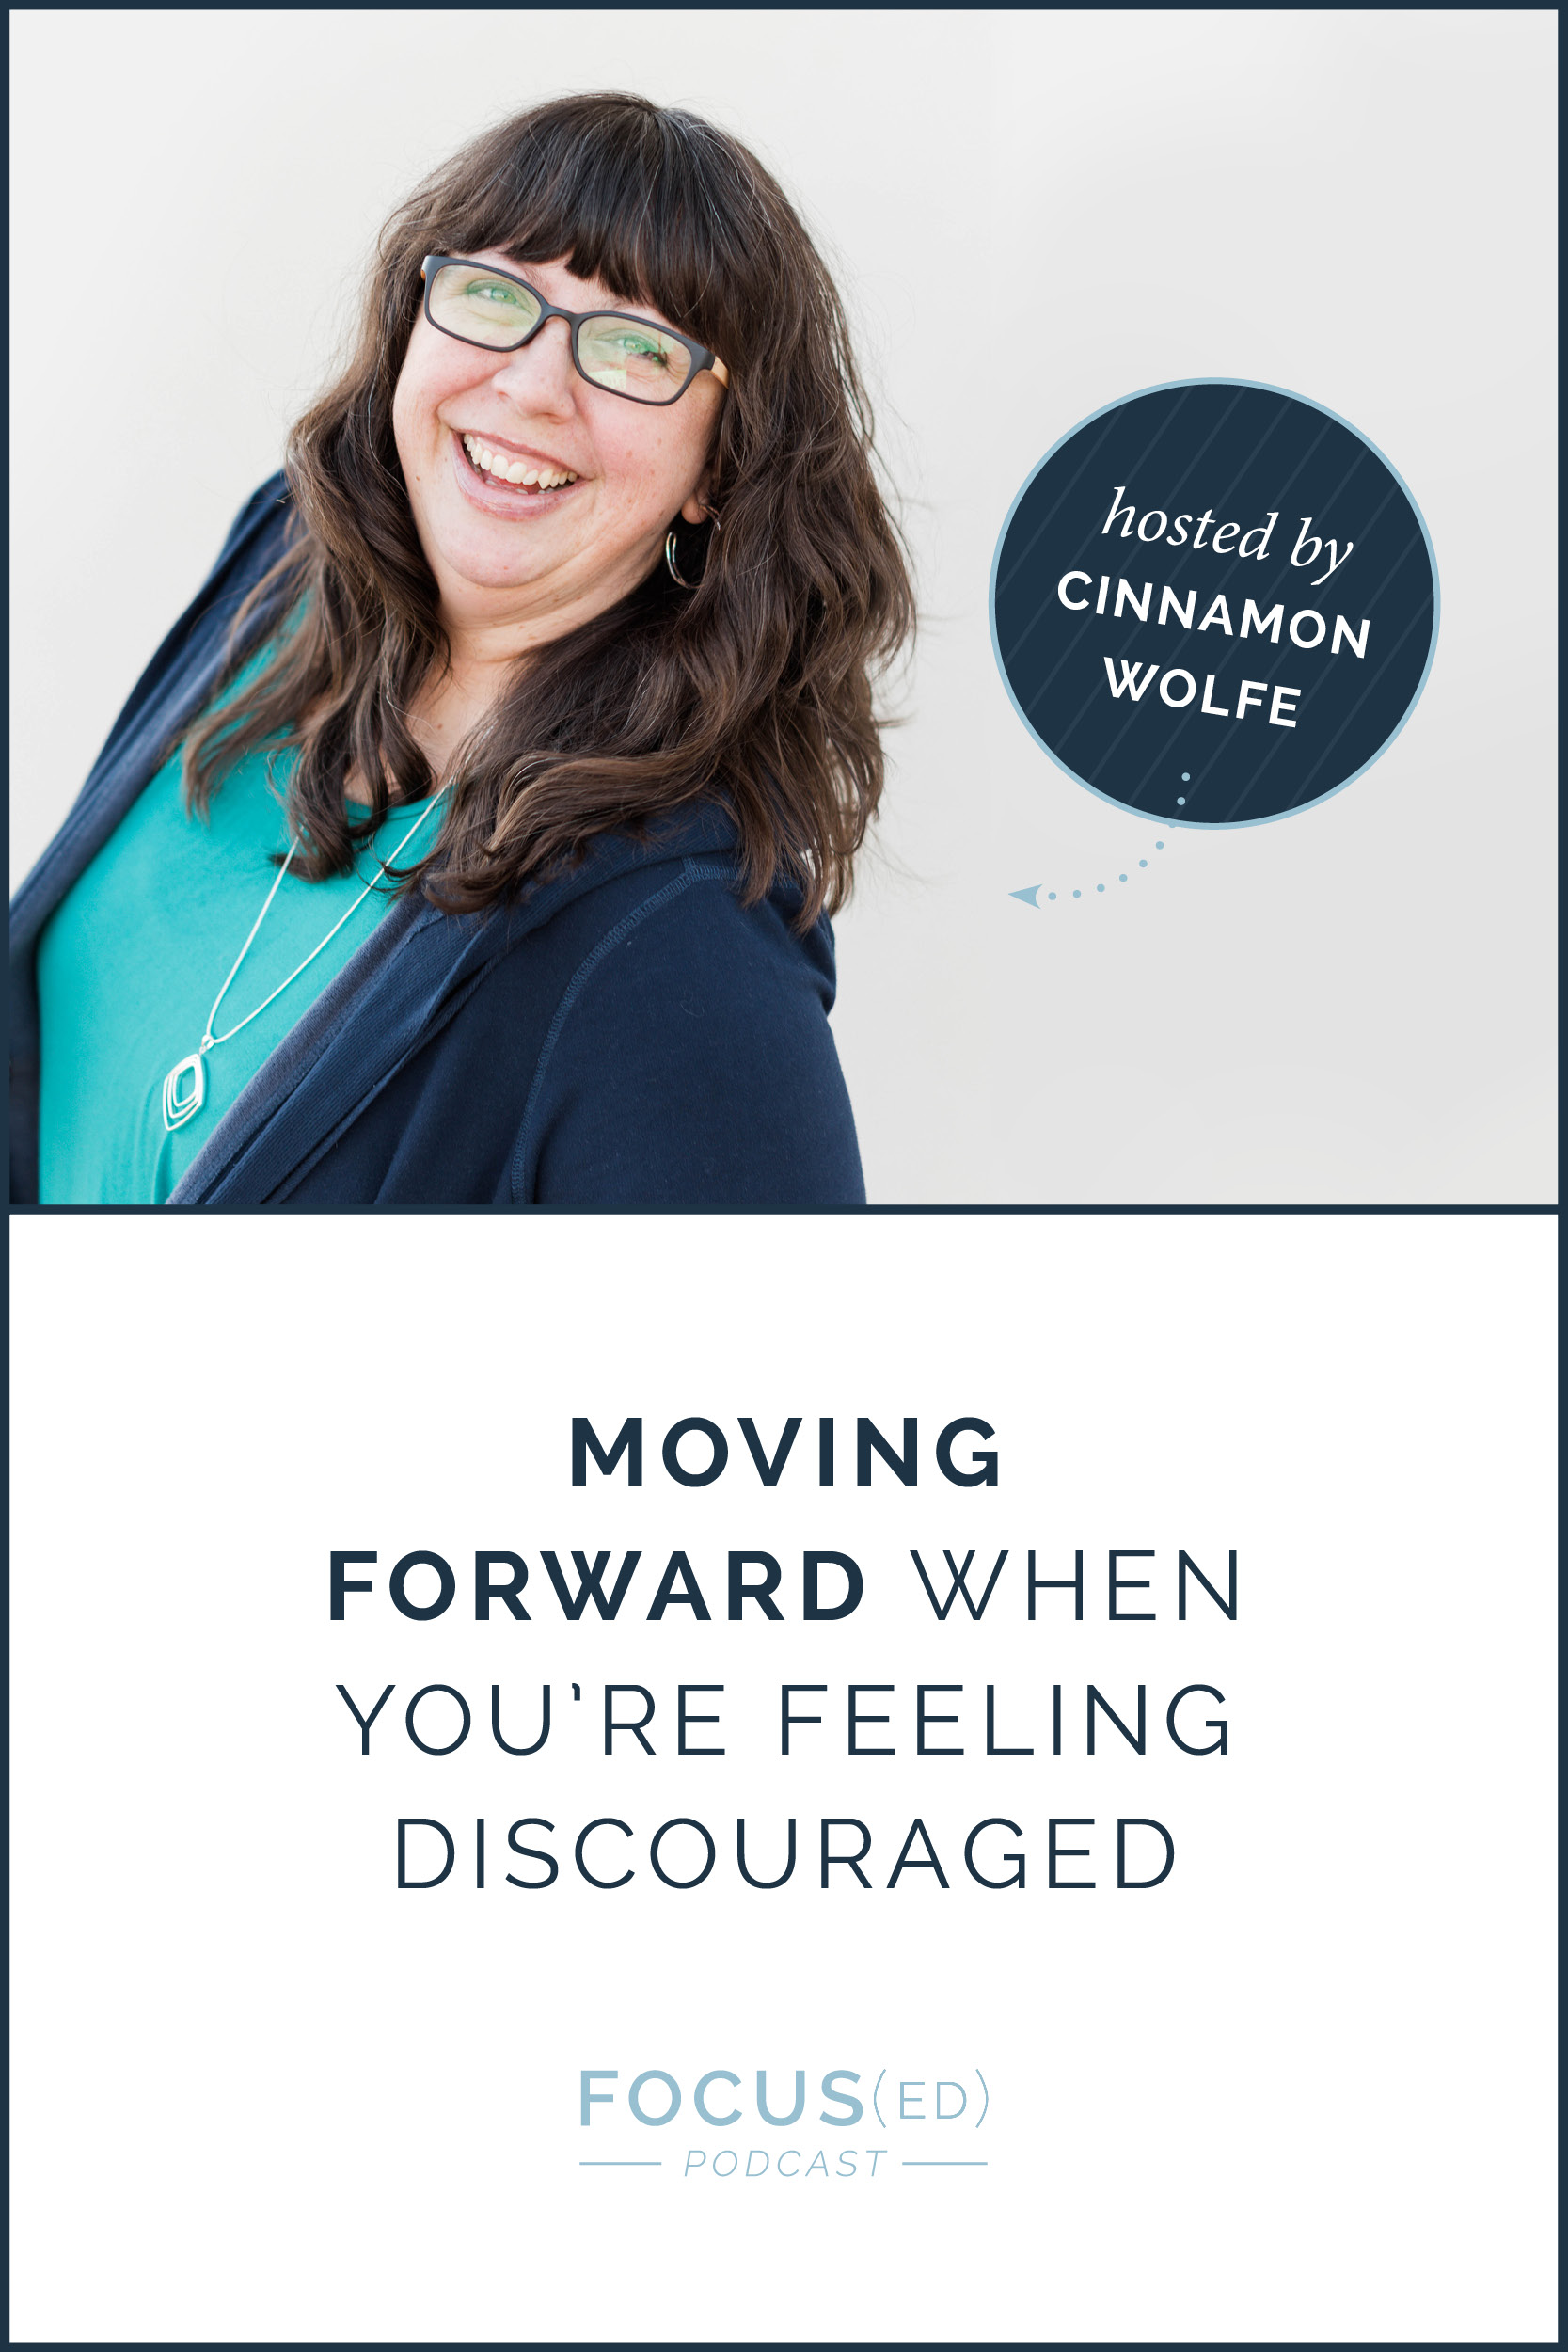 Focused blog - Moving Forward when Discouraged2.jpg